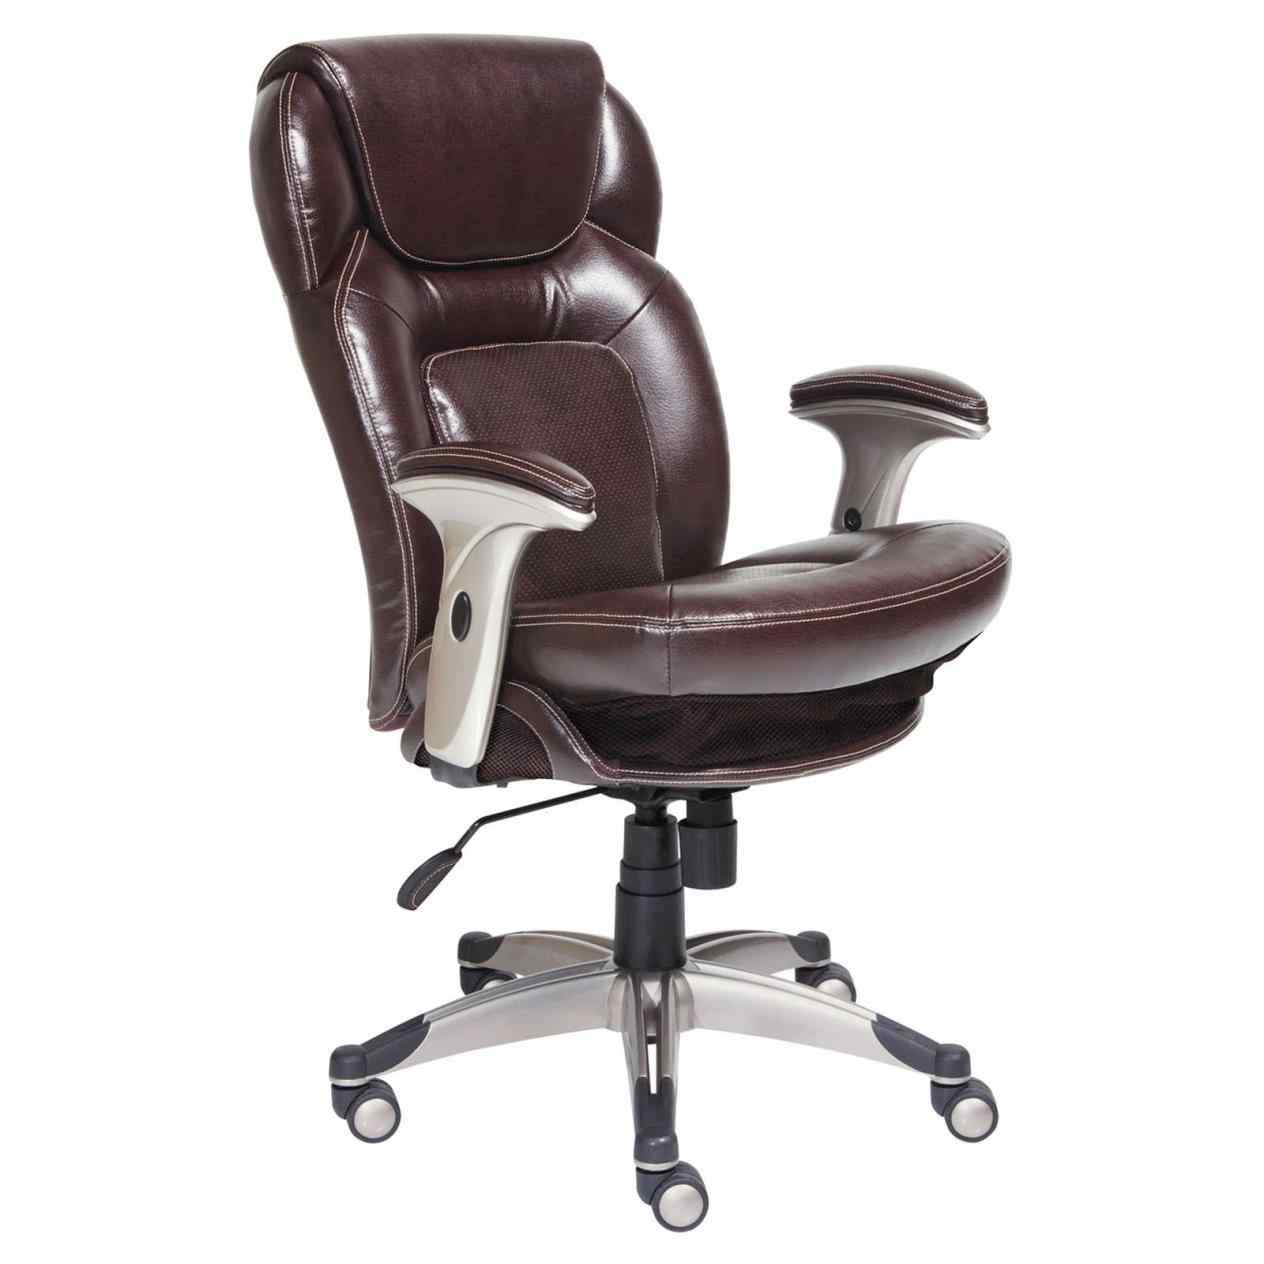 Managers Office Chair True Innovations Puresoft Managers Chair Tan throughout dimensions 1264 X 1264